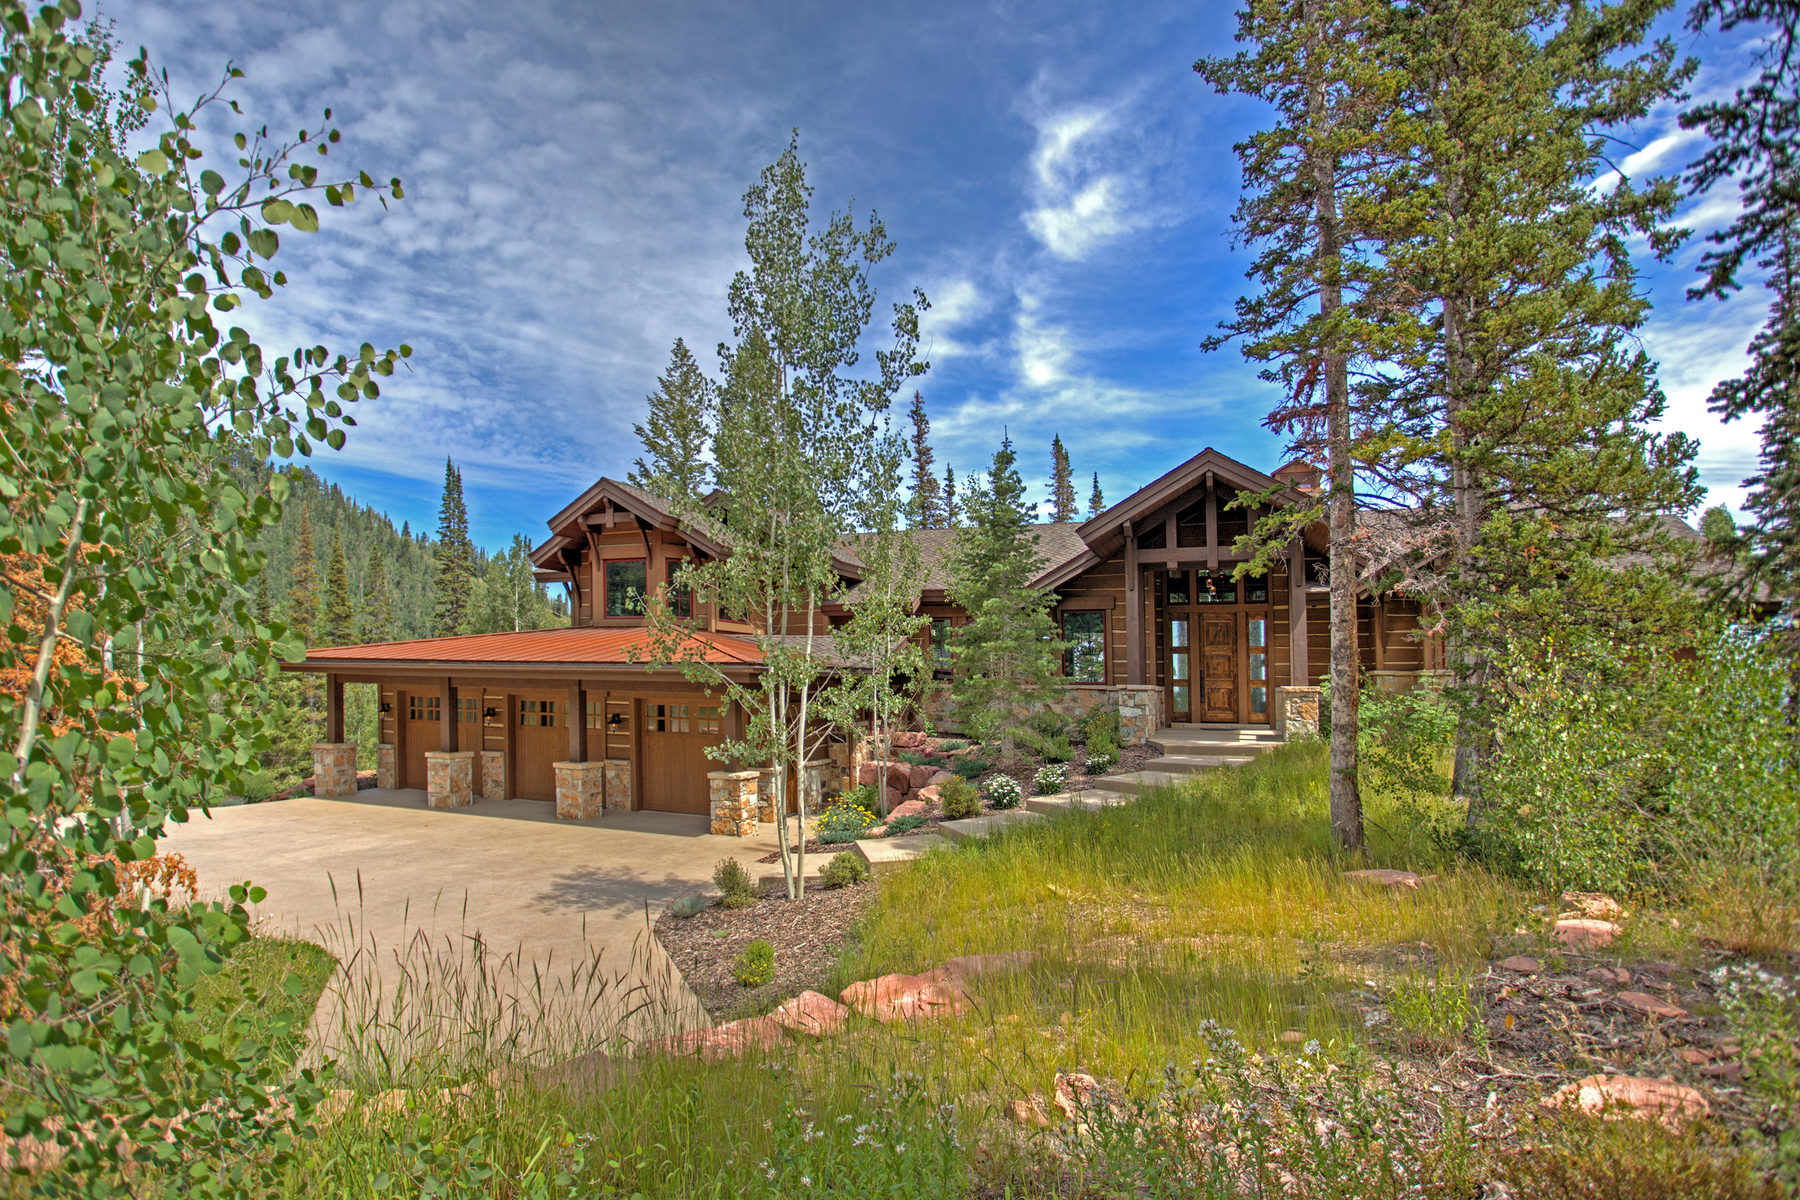 Single Family Home for Sale at Top of the Mountain Retreat 137 White Pine Canyon Rd Lot 130 Park City, Utah 84098 United States